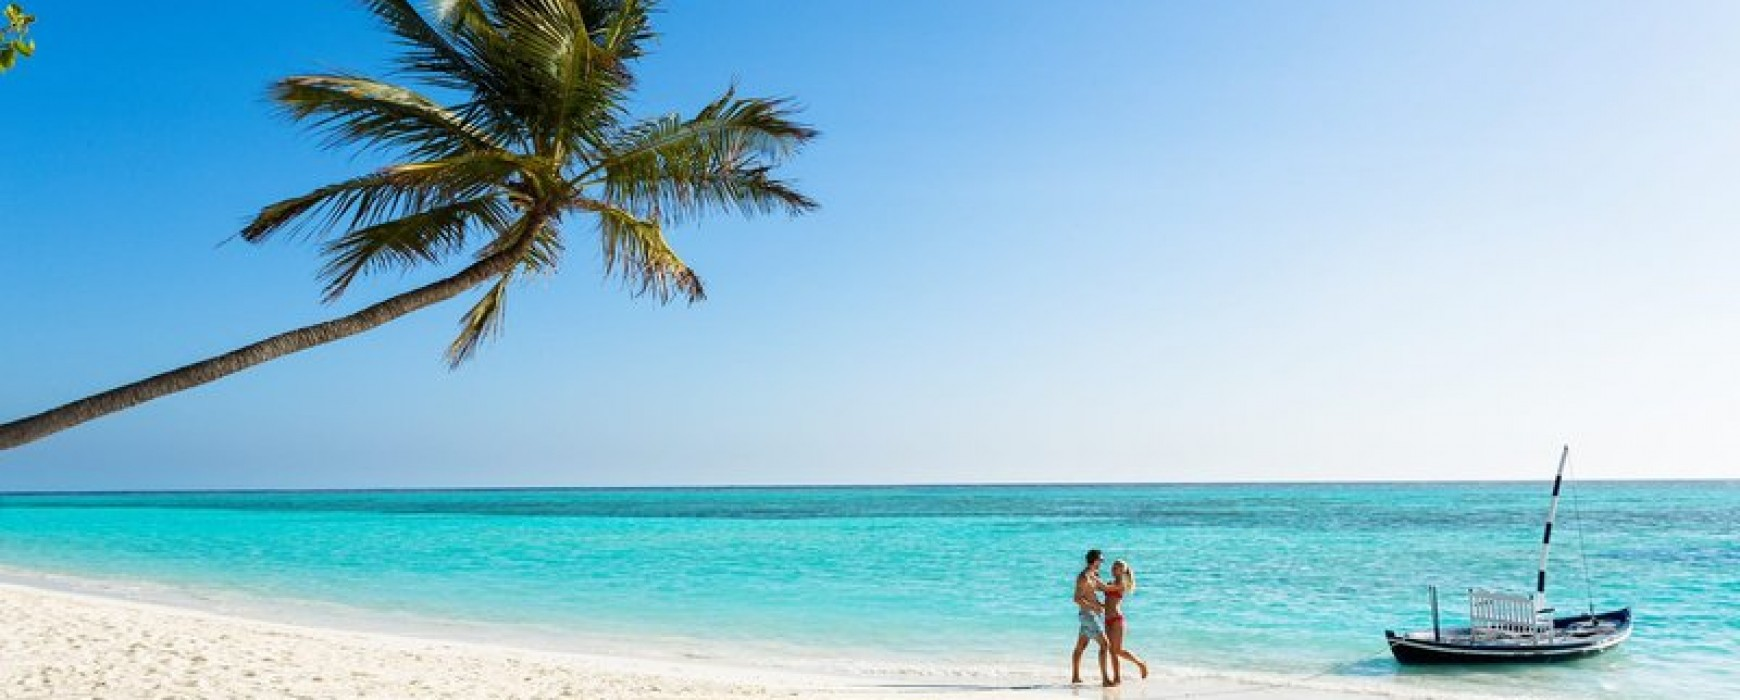 Special Offer At Meeru Island For Euro-Divers Repeaters